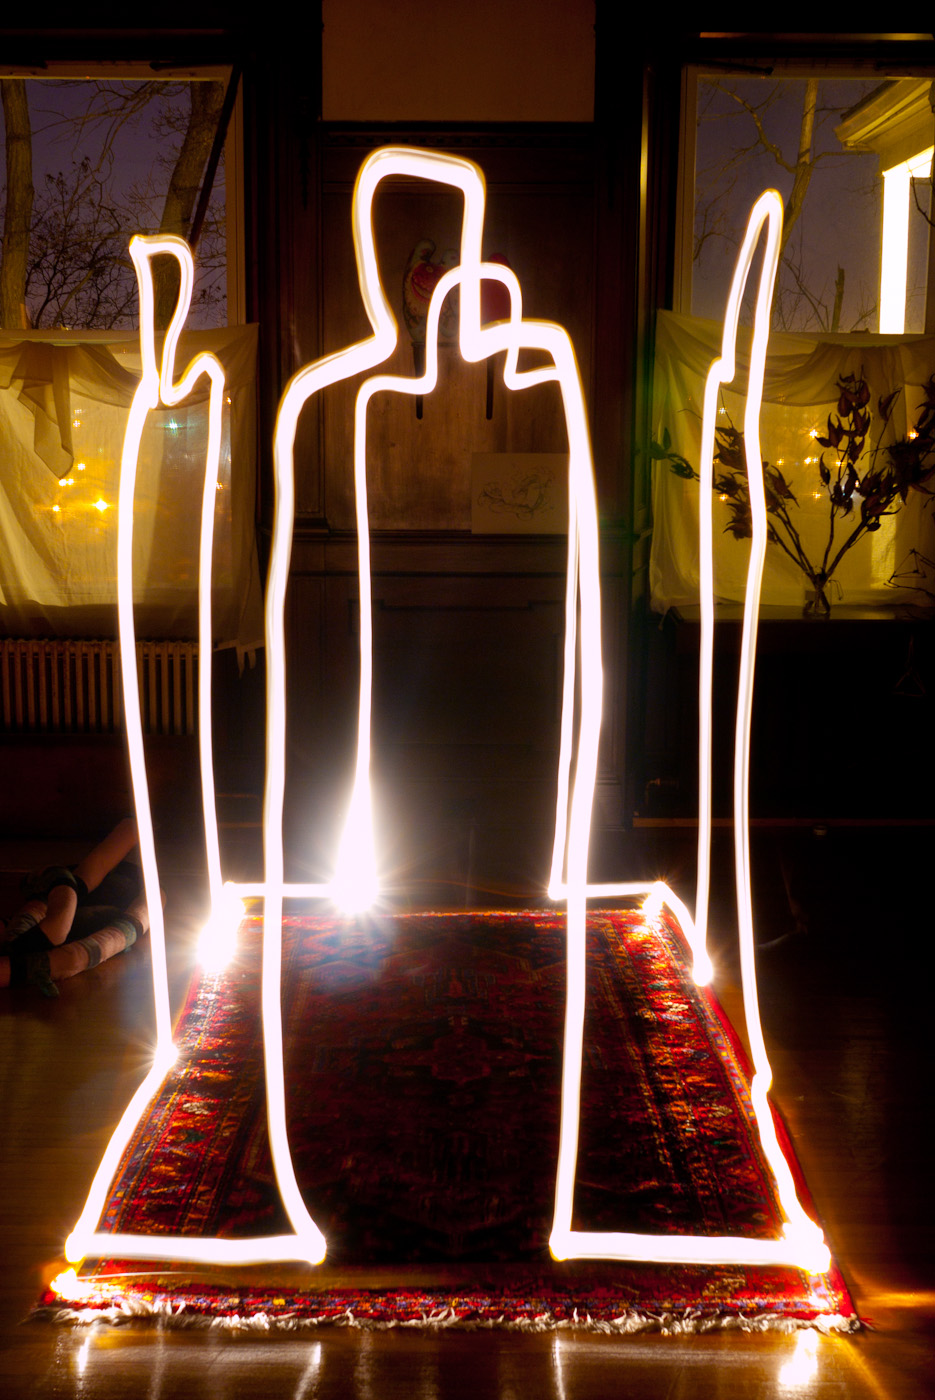 Light trails drawing of four figures standing in a rectangle that looks like a house.